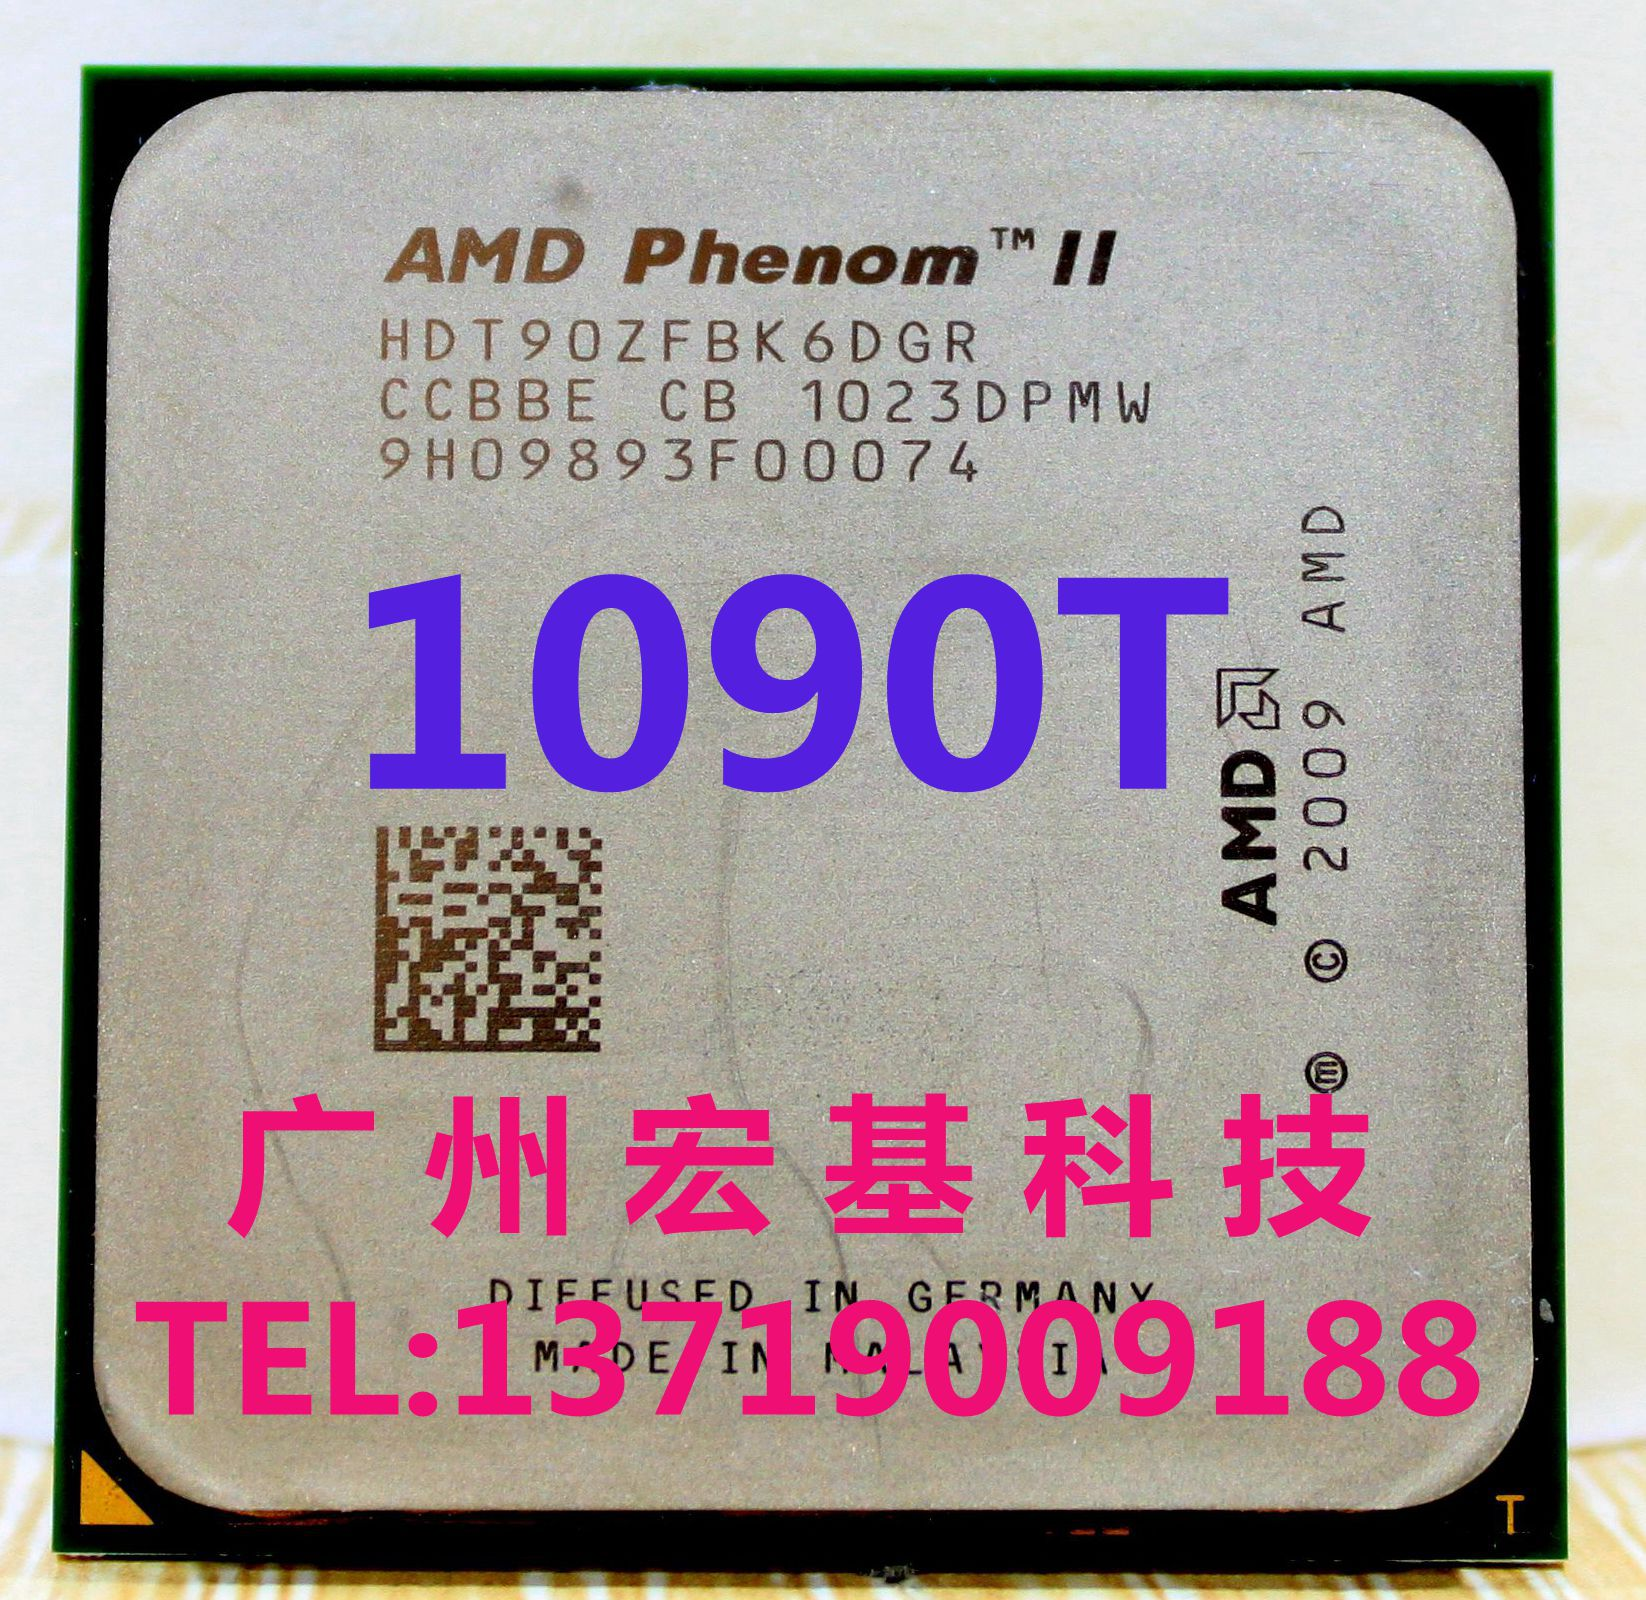 AMD Phenom II X6 1090T six core 3.2G AM3